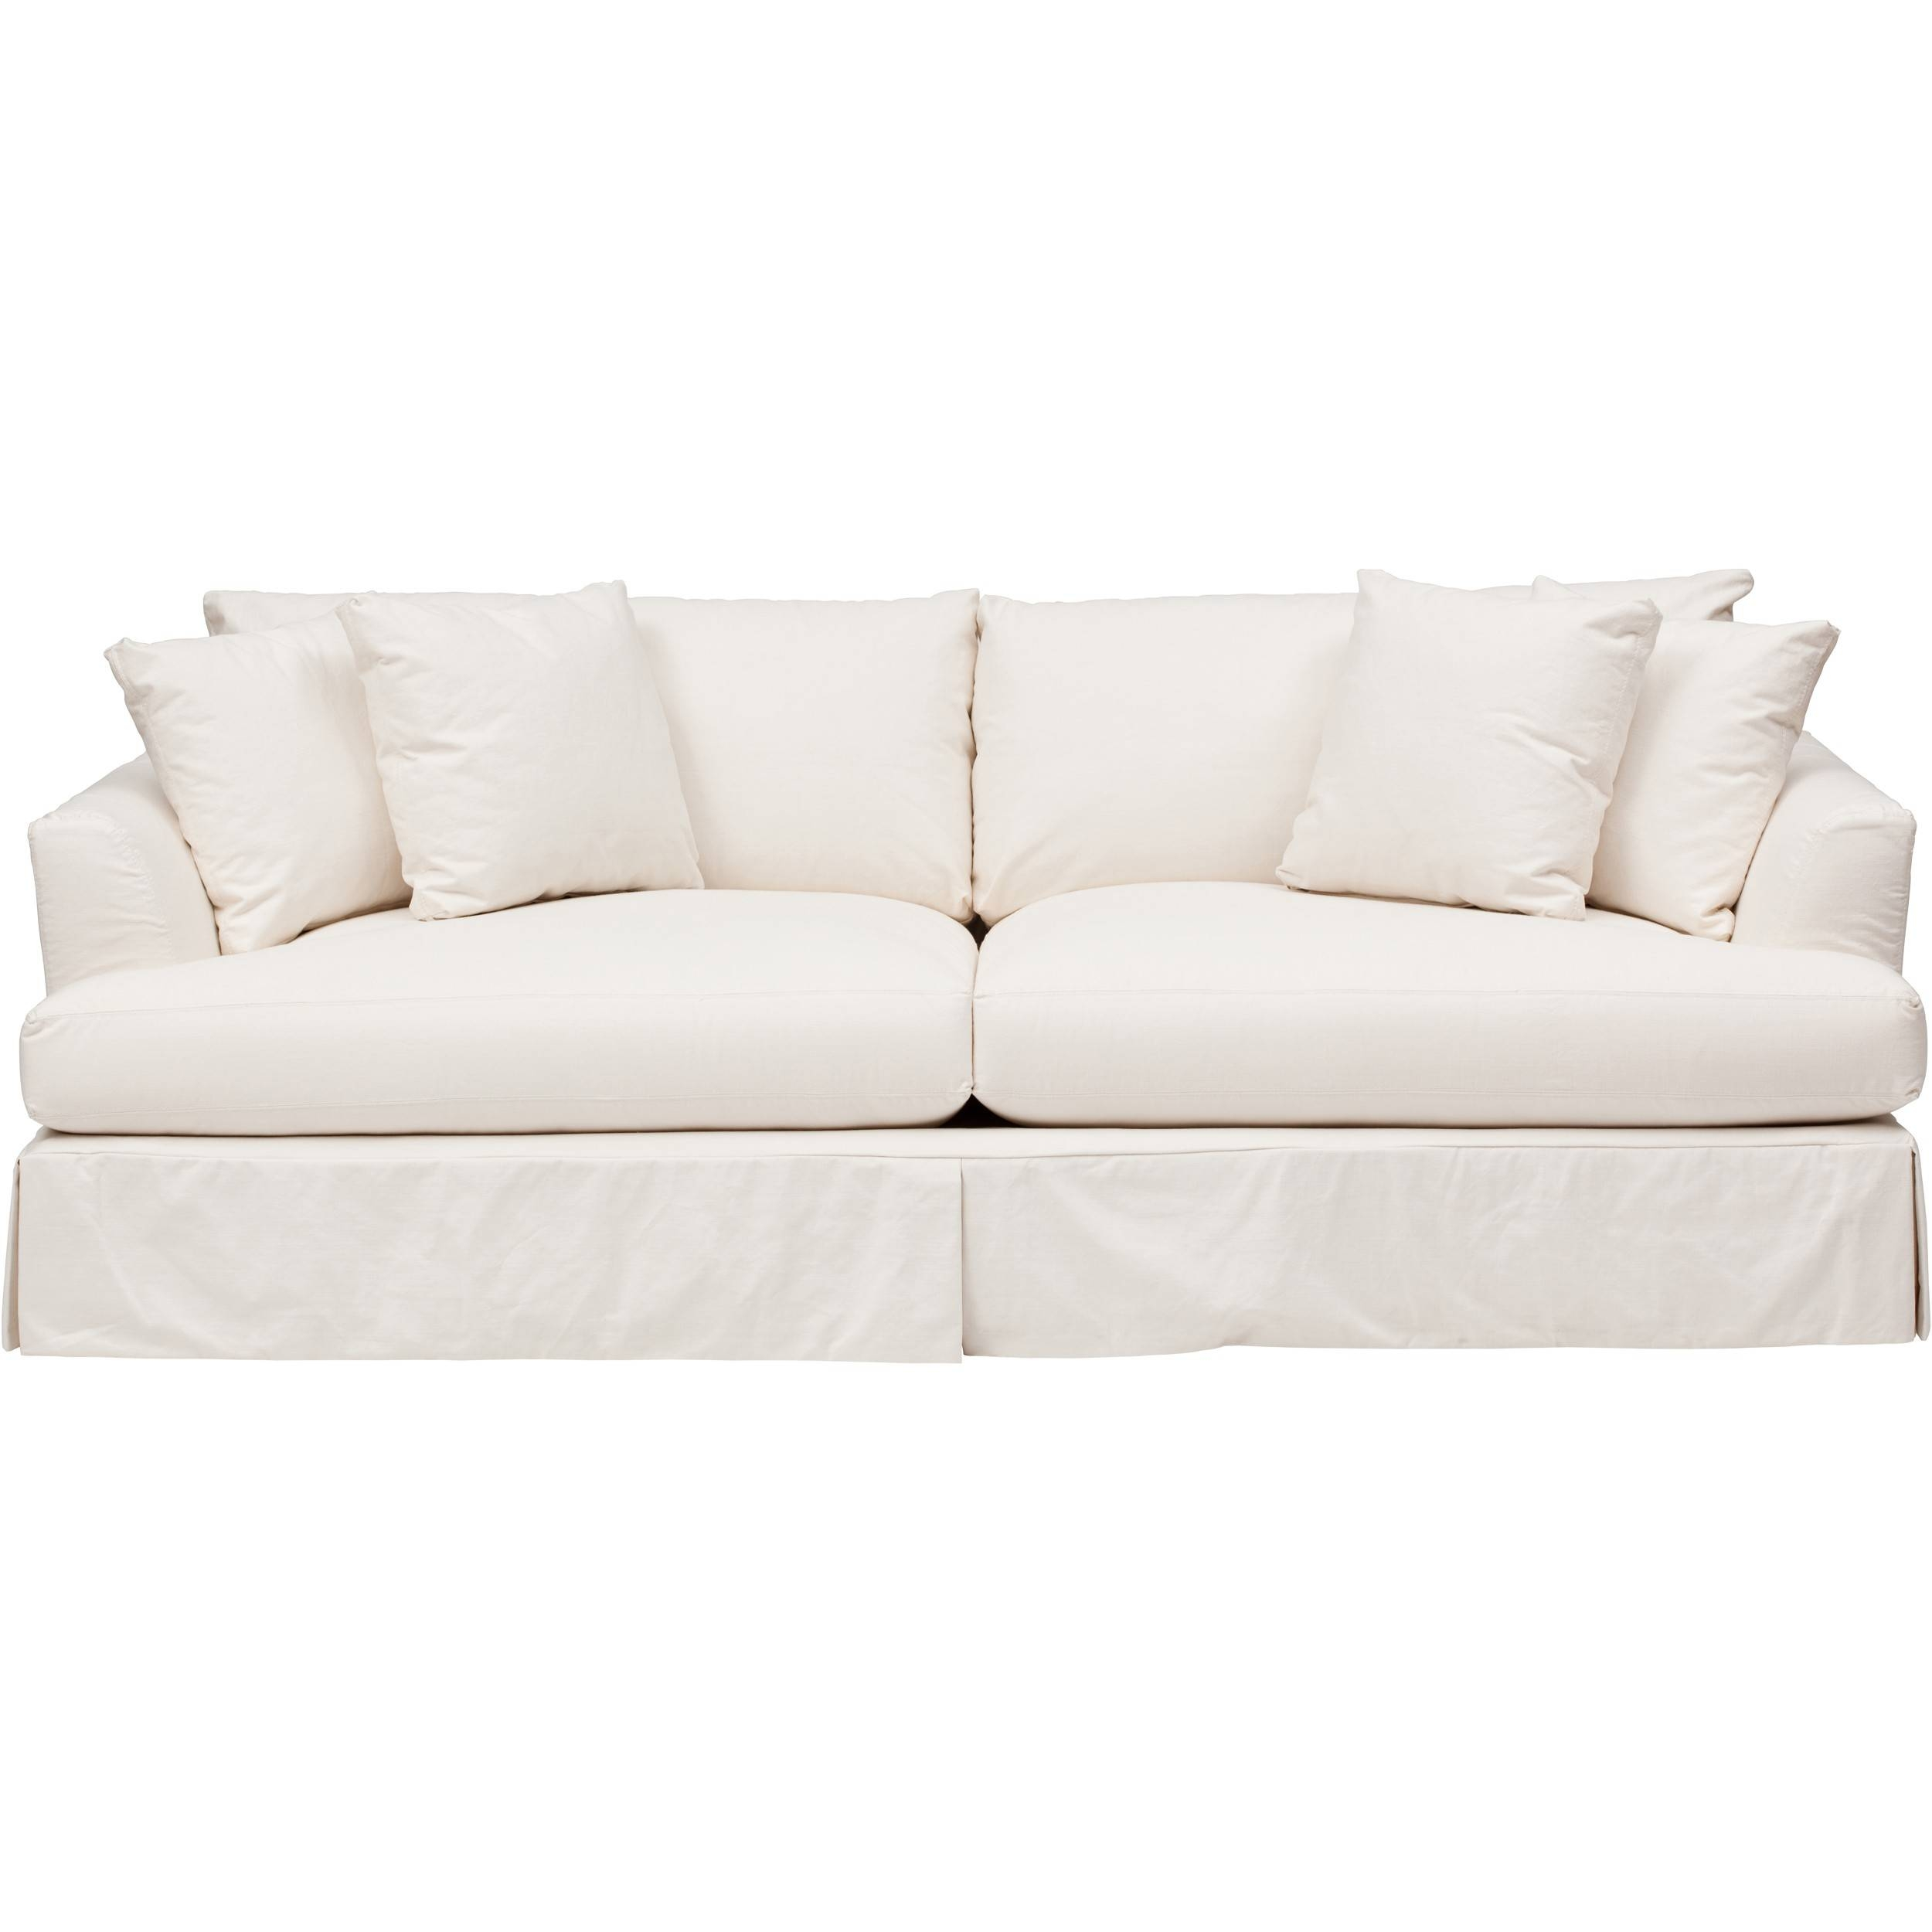 Furniture: Have Fun Changing The Look And Feel With Sofa For Slipcovers Sofas (View 10 of 30)